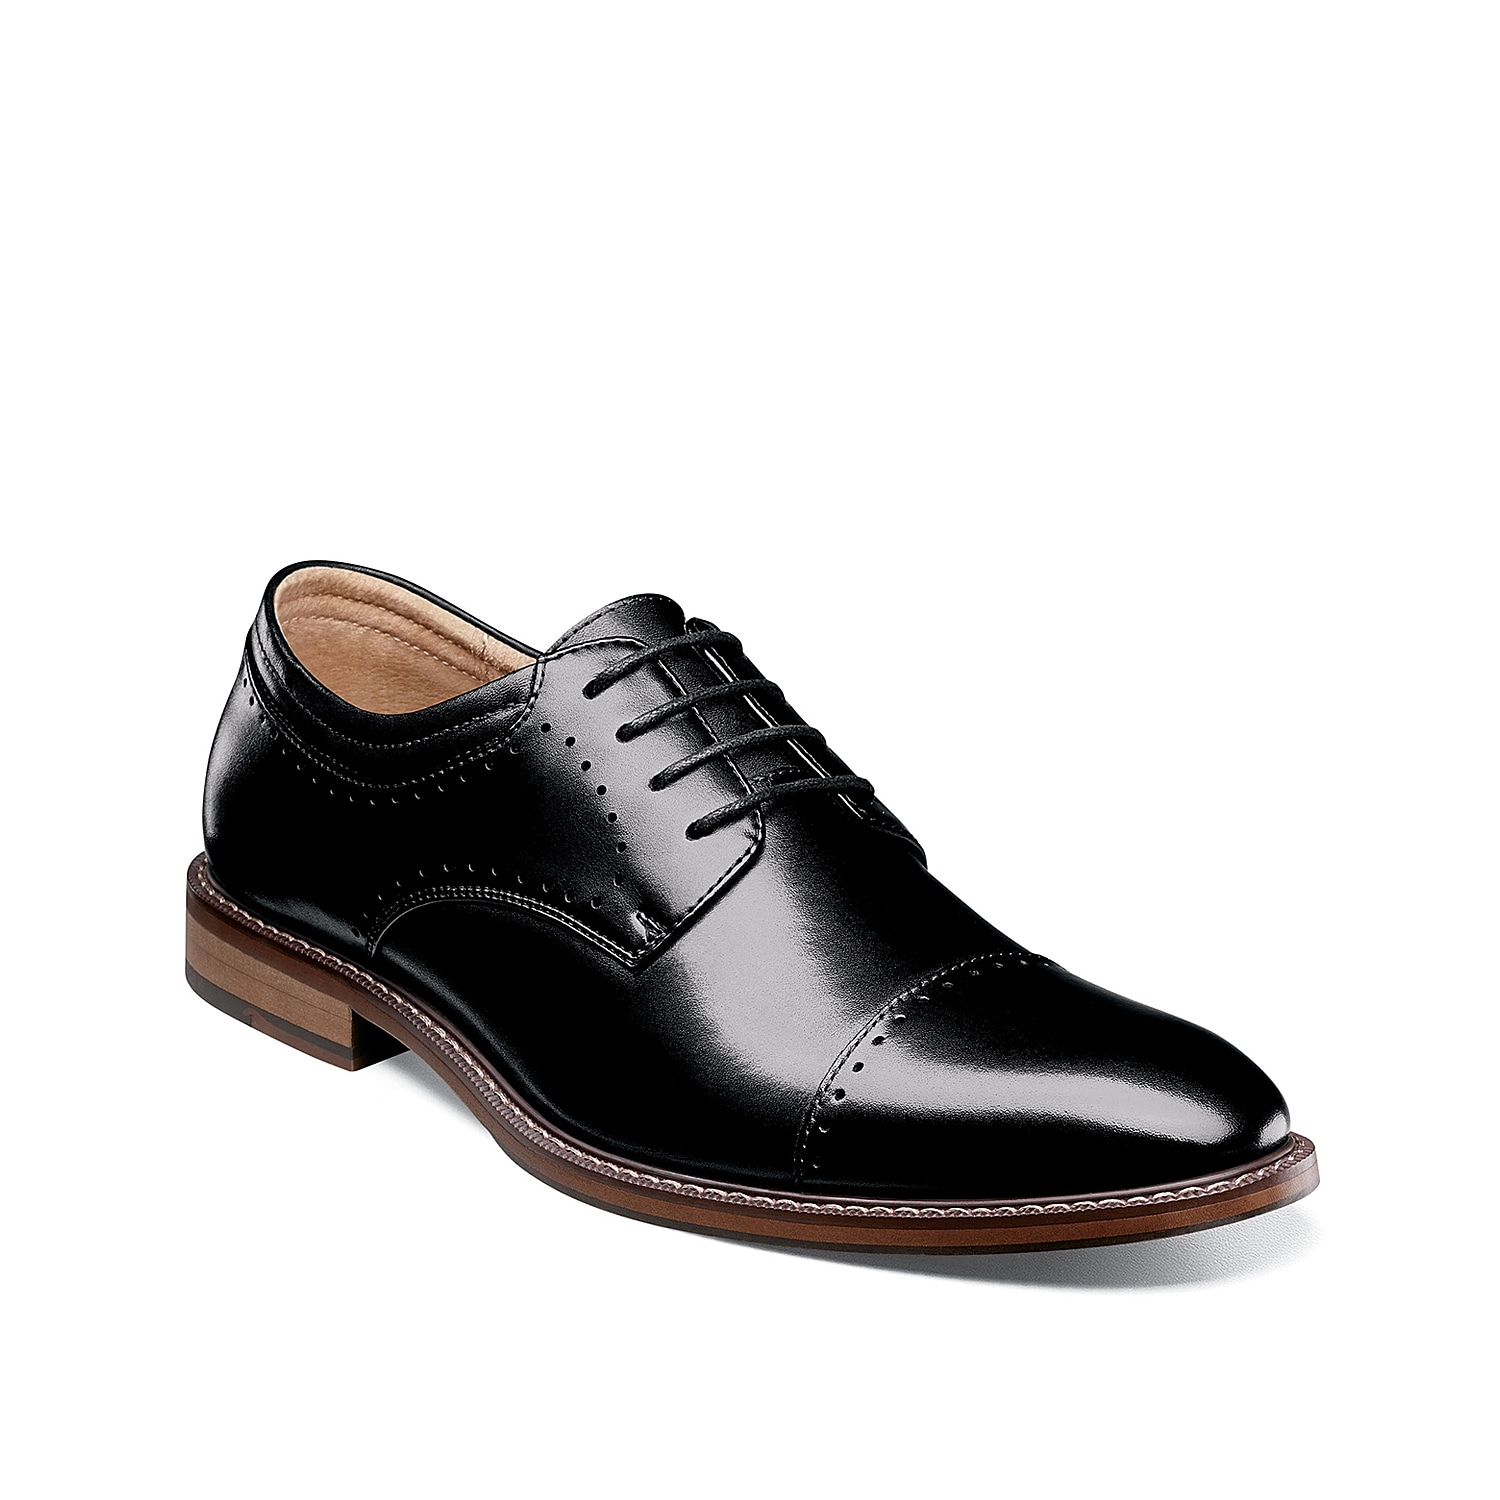 Upgrade your tailored style with the Flemming cap toe oxford from Stacy Adams. A burnished leather upper updates this classic style with modern appeal.